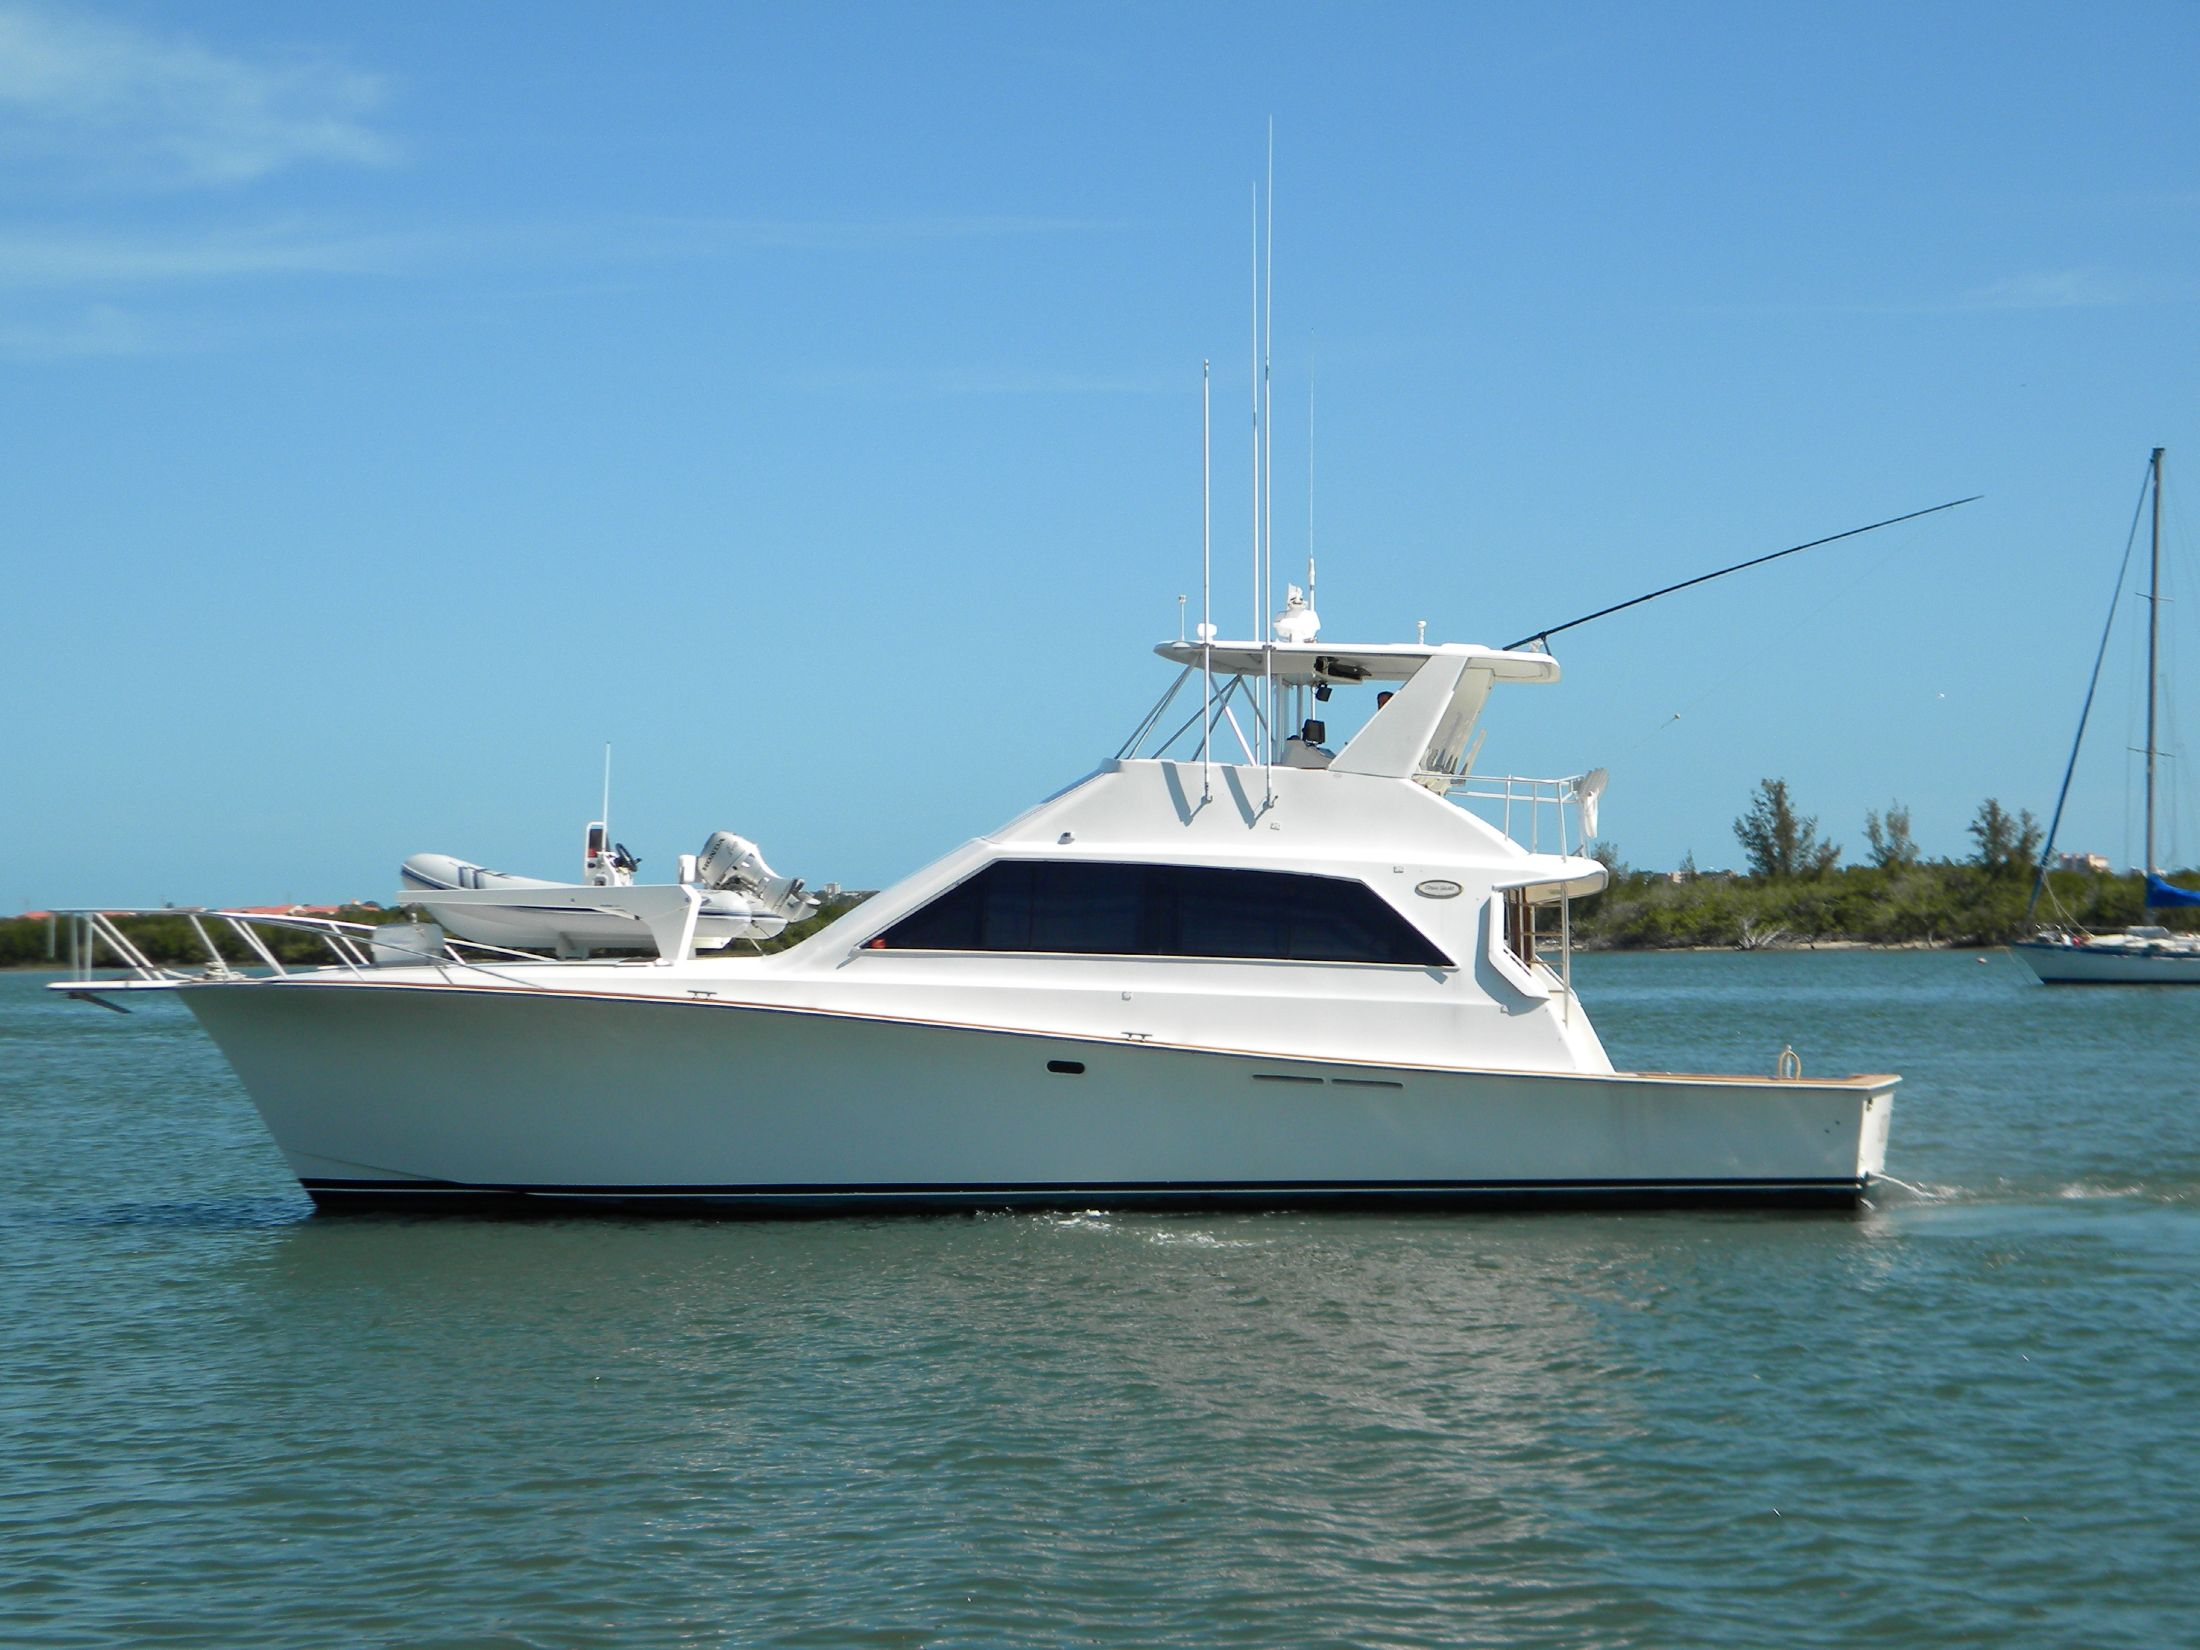 58 ocean yachts 1990 anonymous for sale in daytona beach for Ocean yachts 48 motor yacht for sale